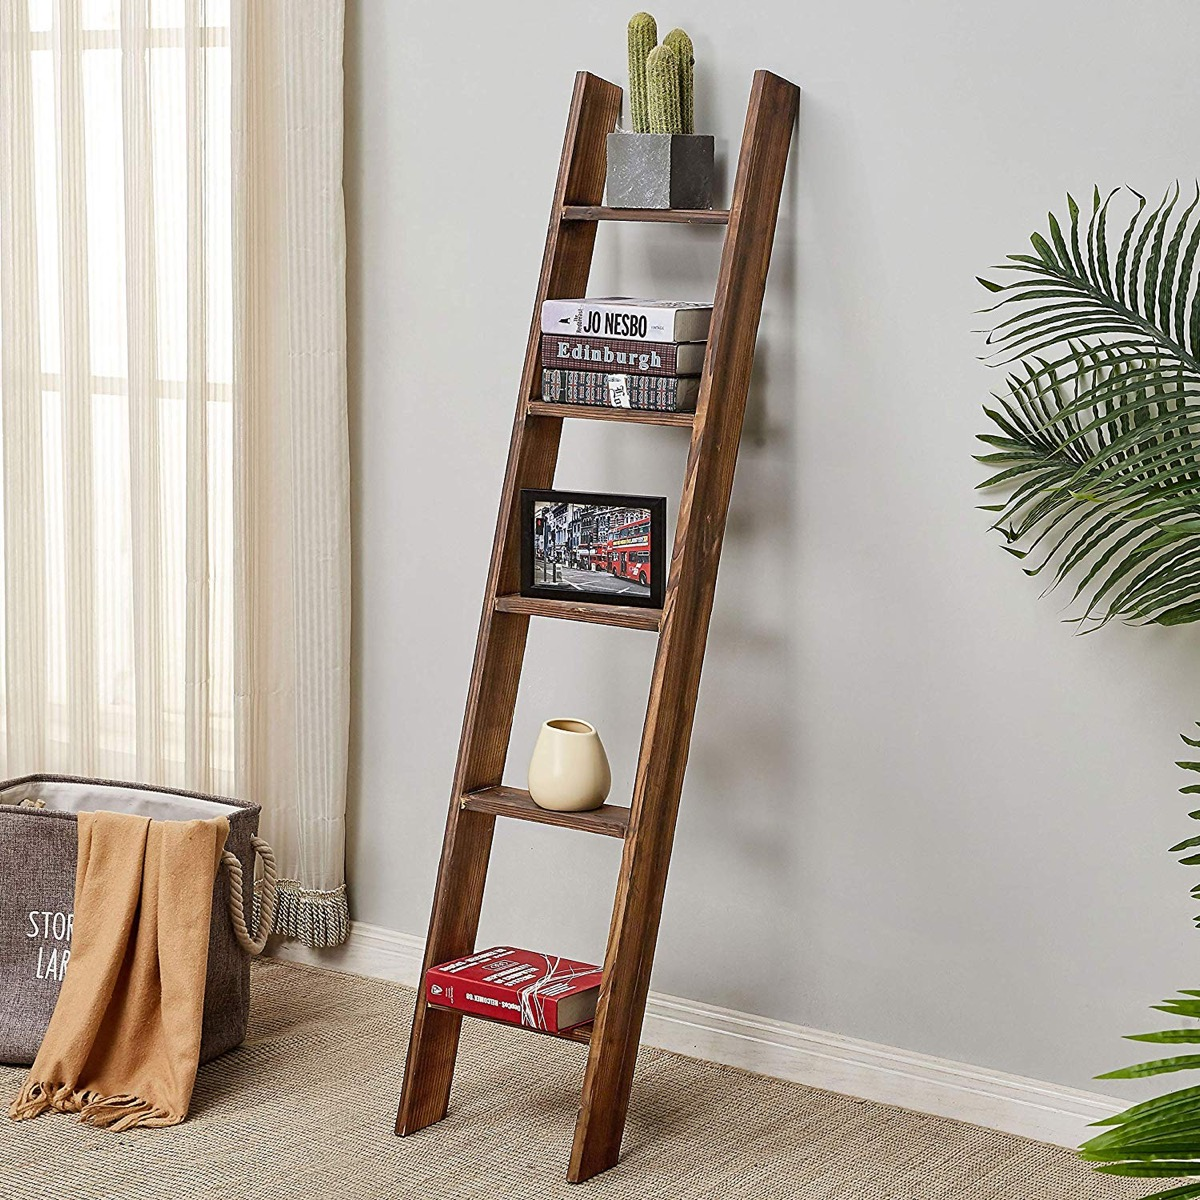 narrow-ladder-shelf-for-modern-rustic-industrial-interior-design